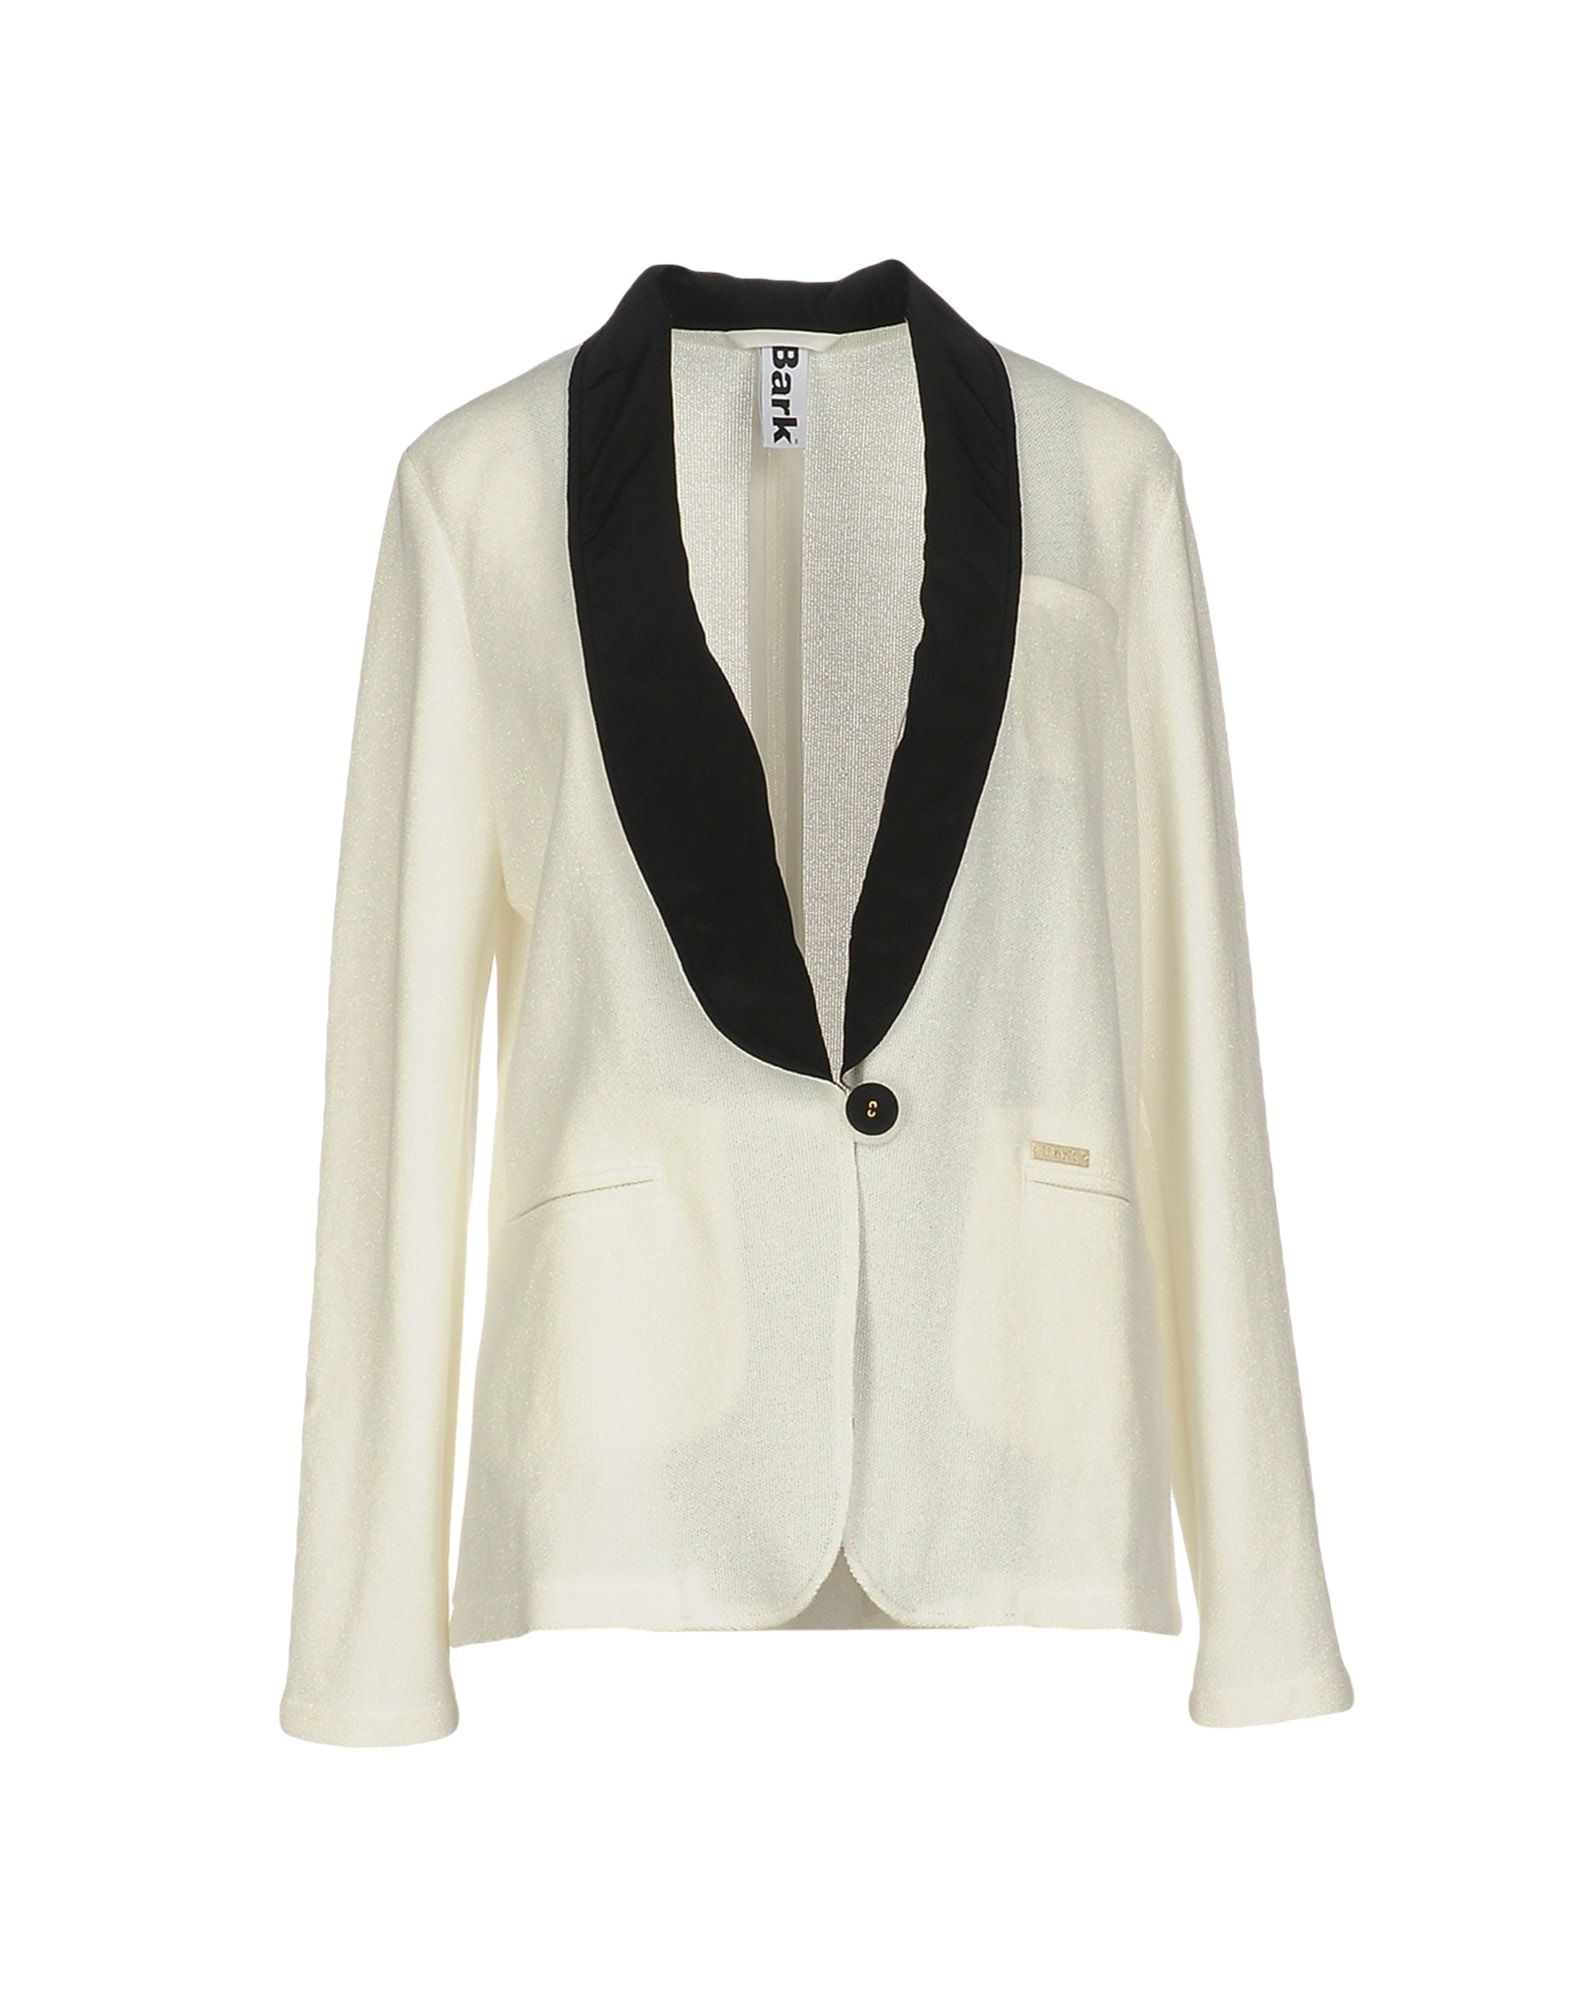 BARK Blazer in White